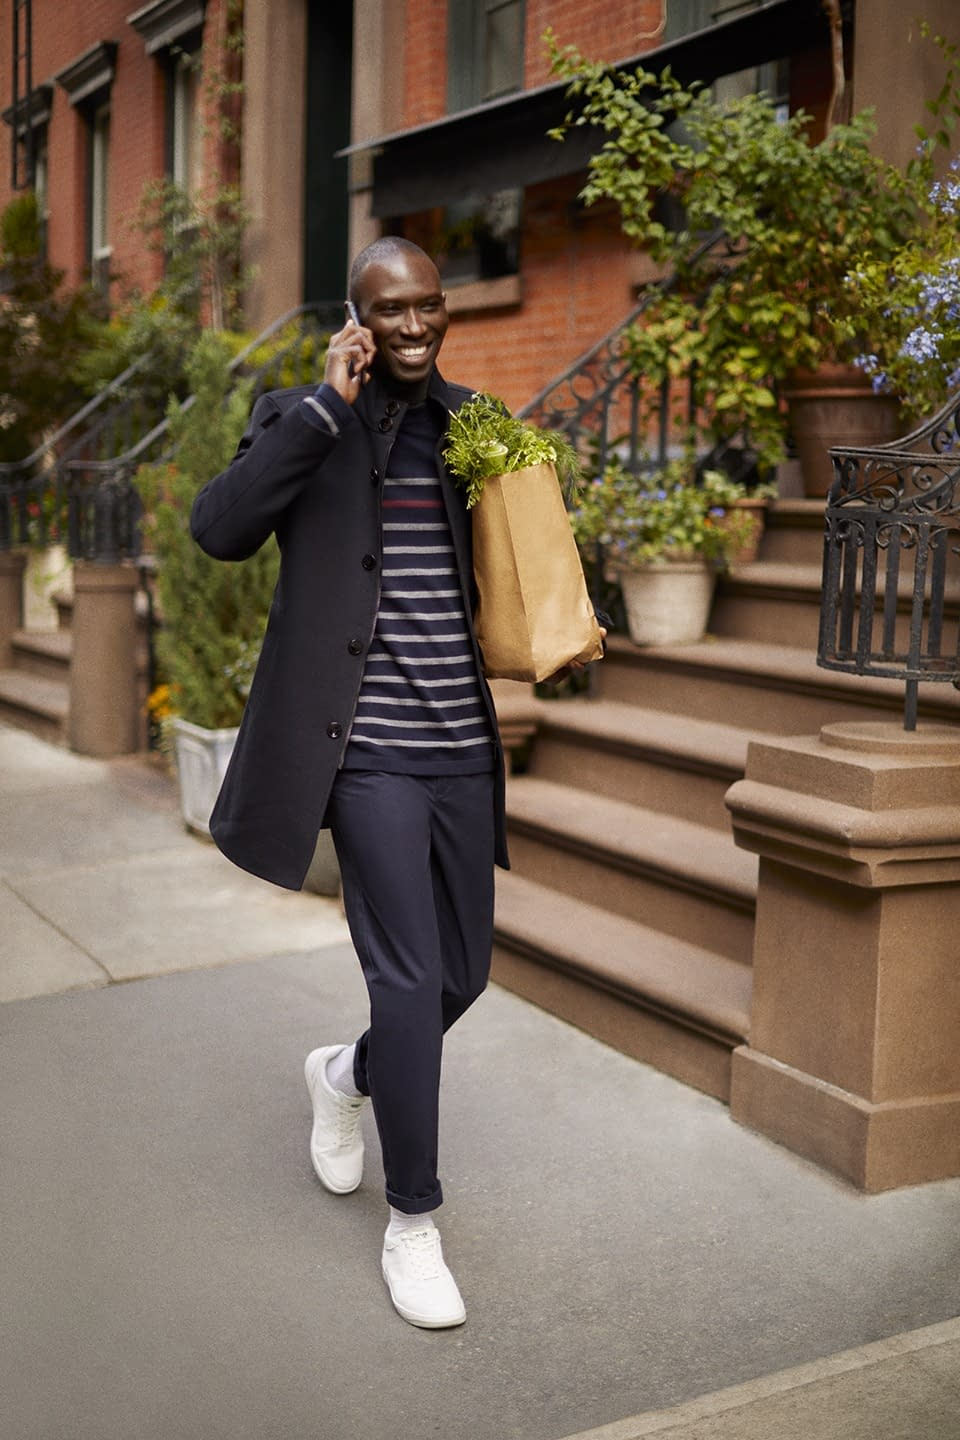 A NEW YORKER - LEFTIES - WITH ARMANDO CABRAL PHOTO BY ENRIC GALCERAN - 13